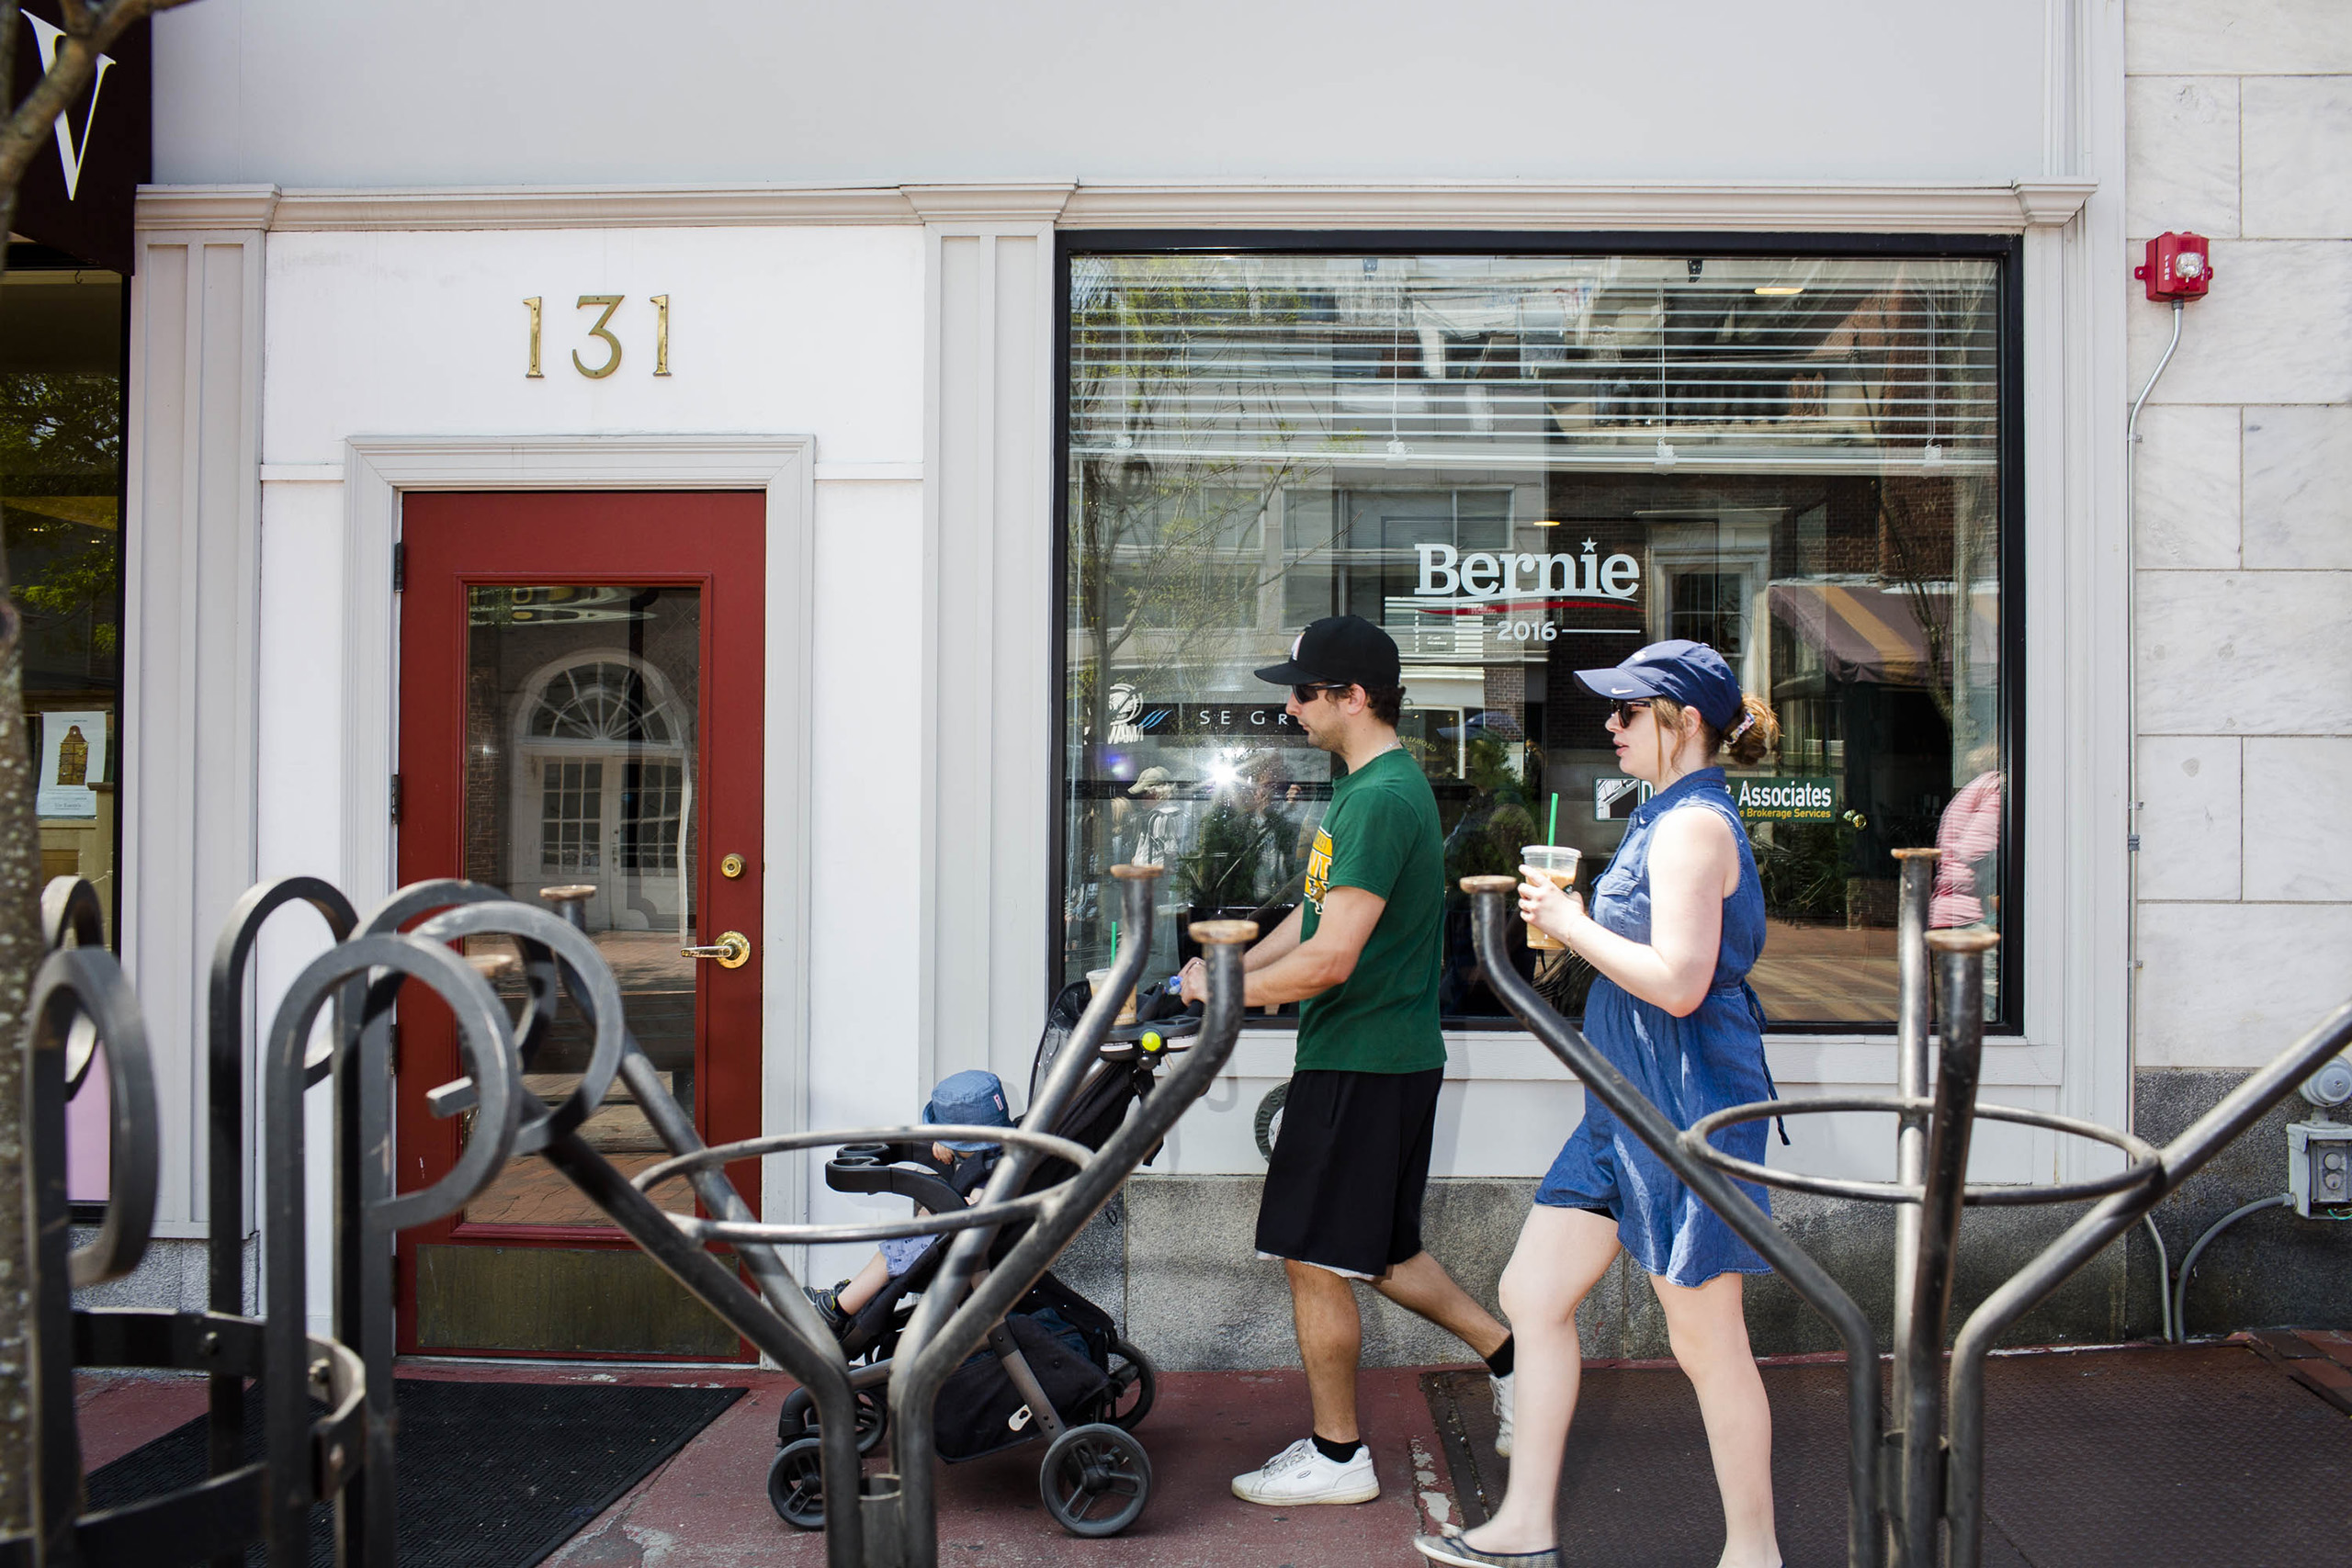 Outside of Bernie Sanders campaign headquarters on May 23, 2016, in Burlington, VT.